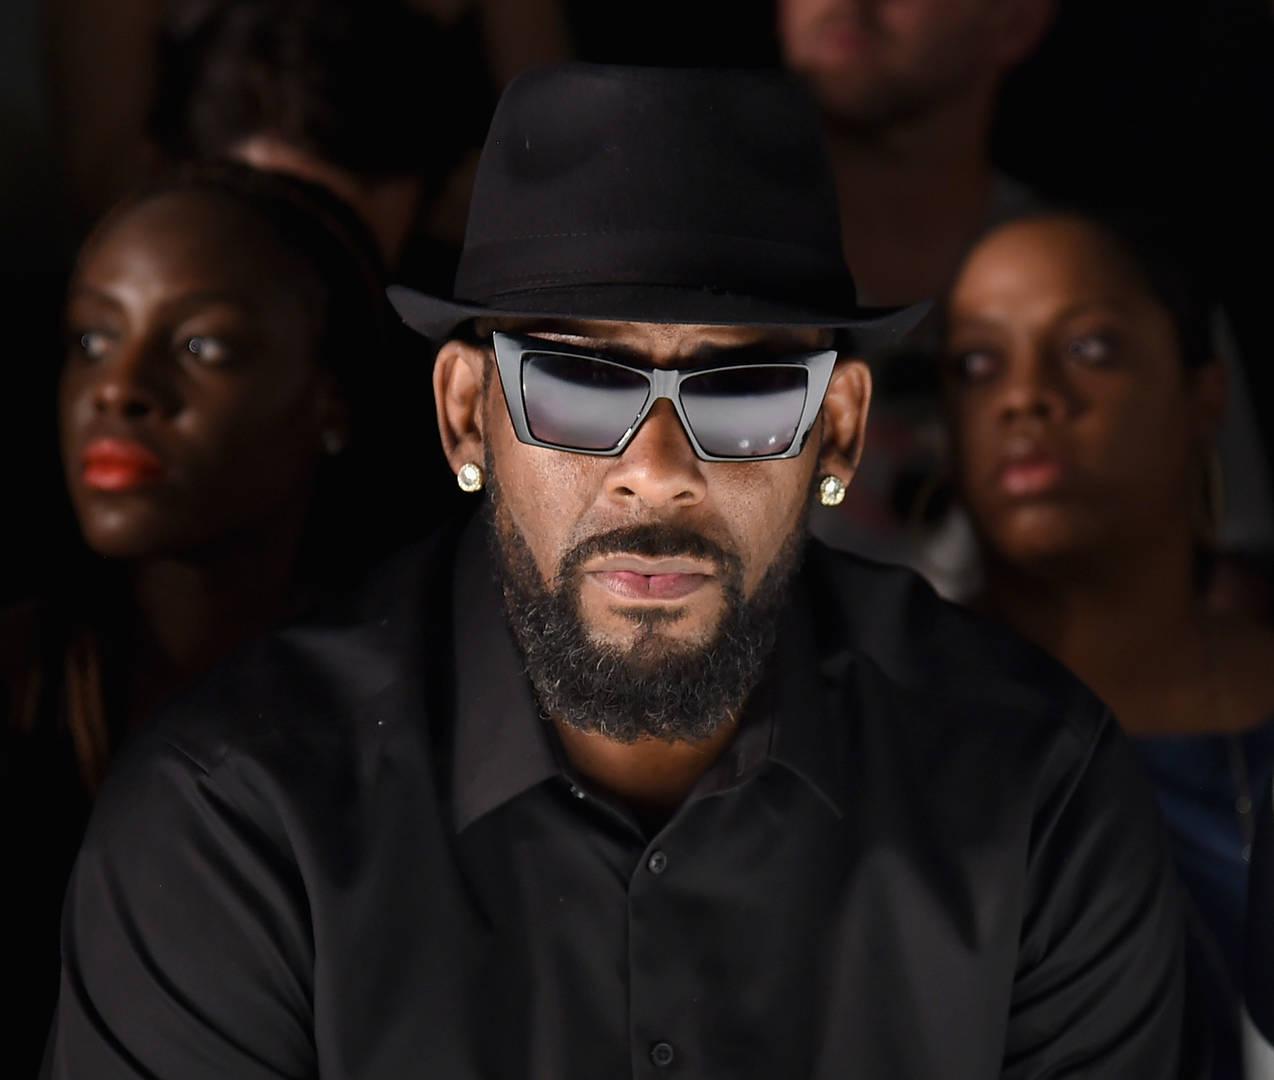 R. Kelly charged with 10 counts of sex abuse